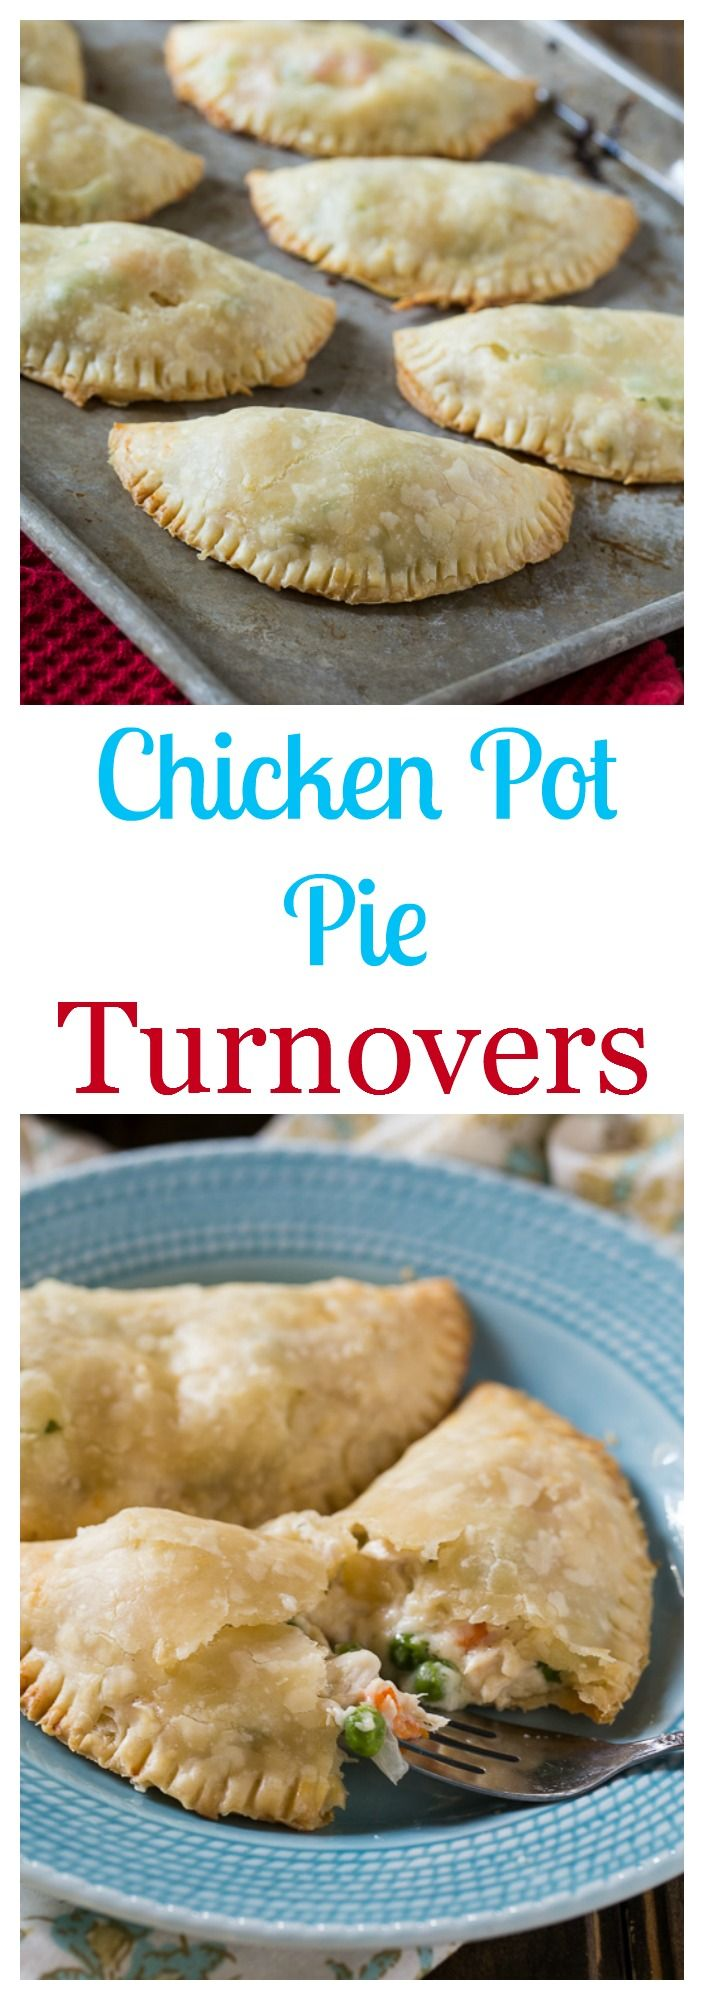 Easy Chicken Pot Pie Turnovers made with refrigerated pie crusts. Can also use leftover Thanksgiving turkey.